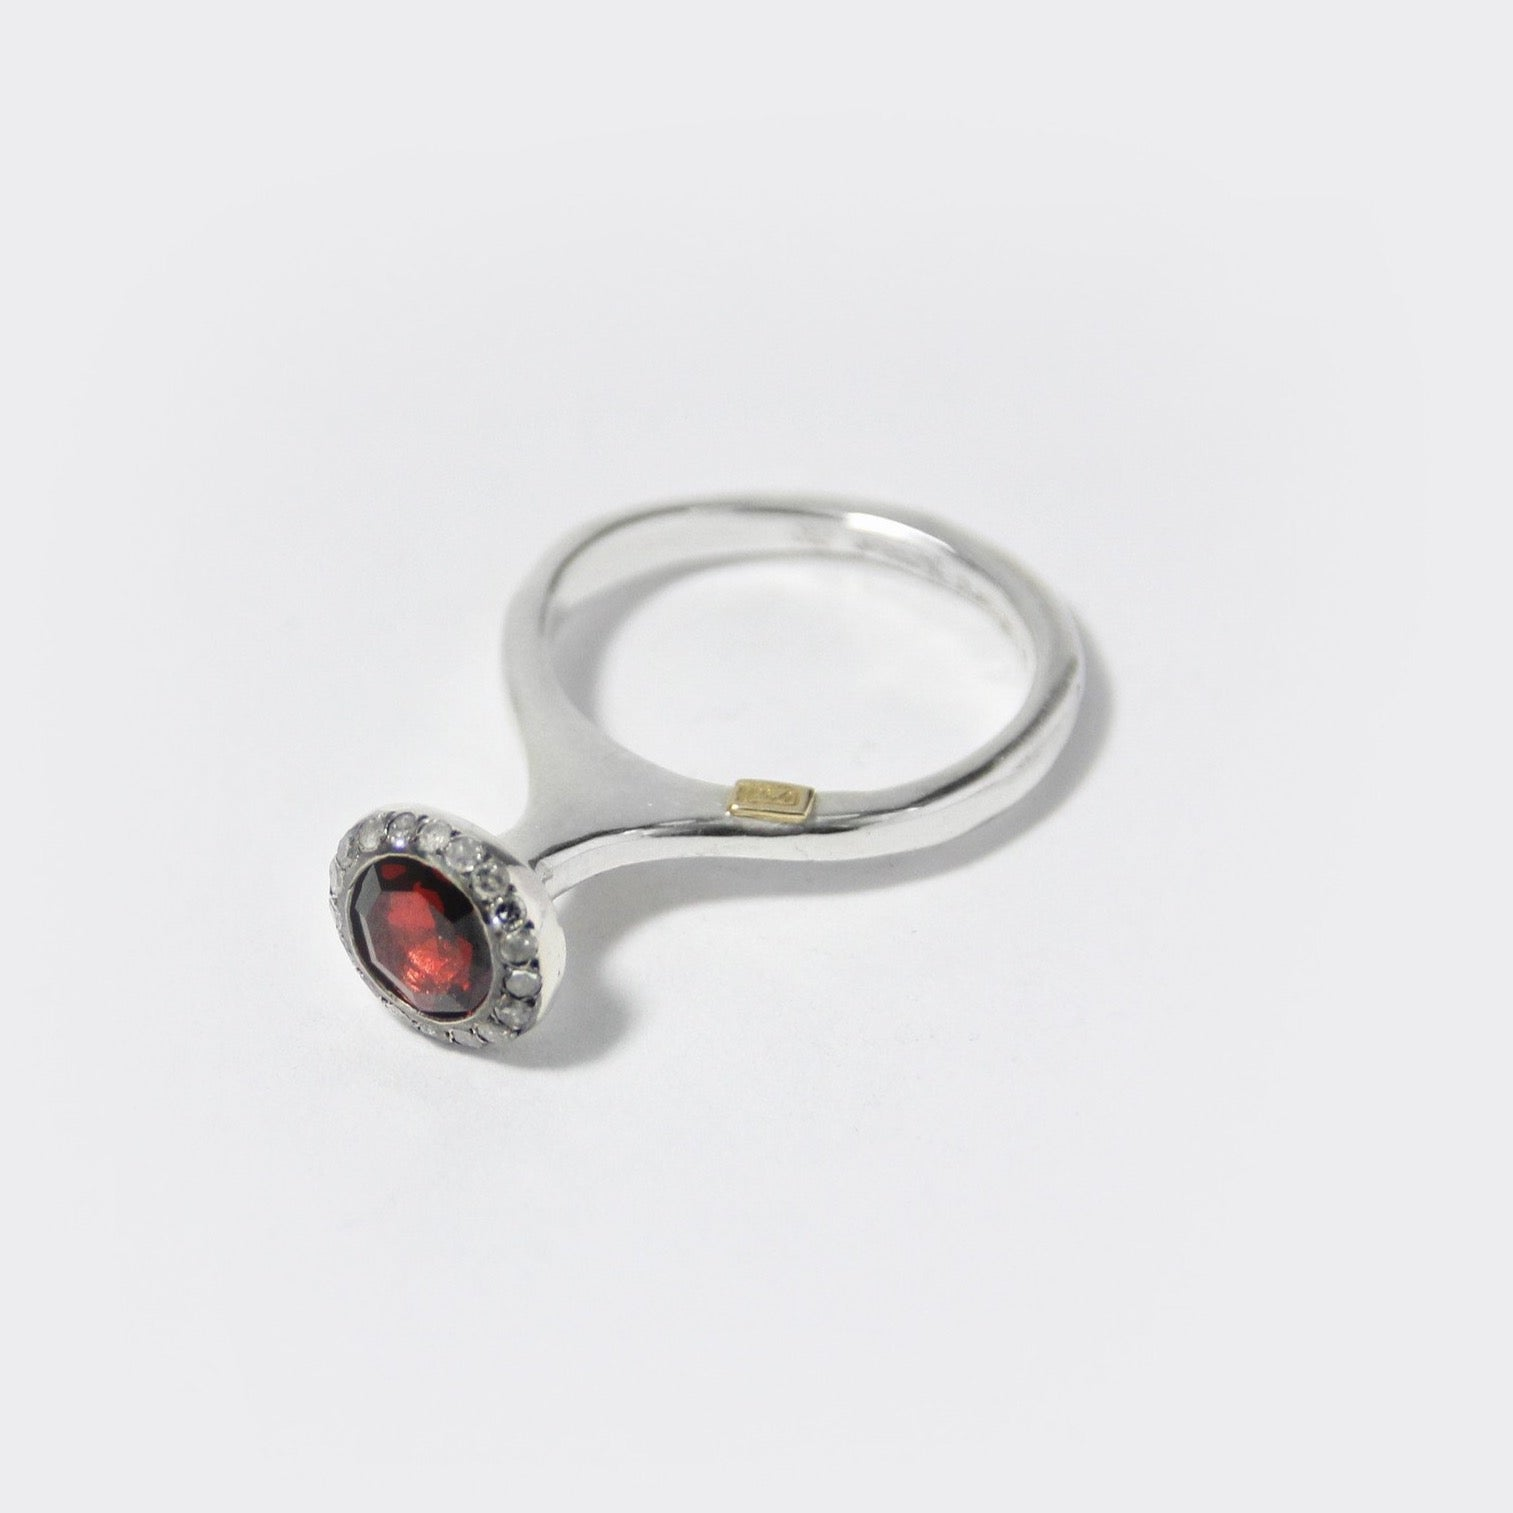 Belquis Ring with Garnet and Icy Gray Diamonds